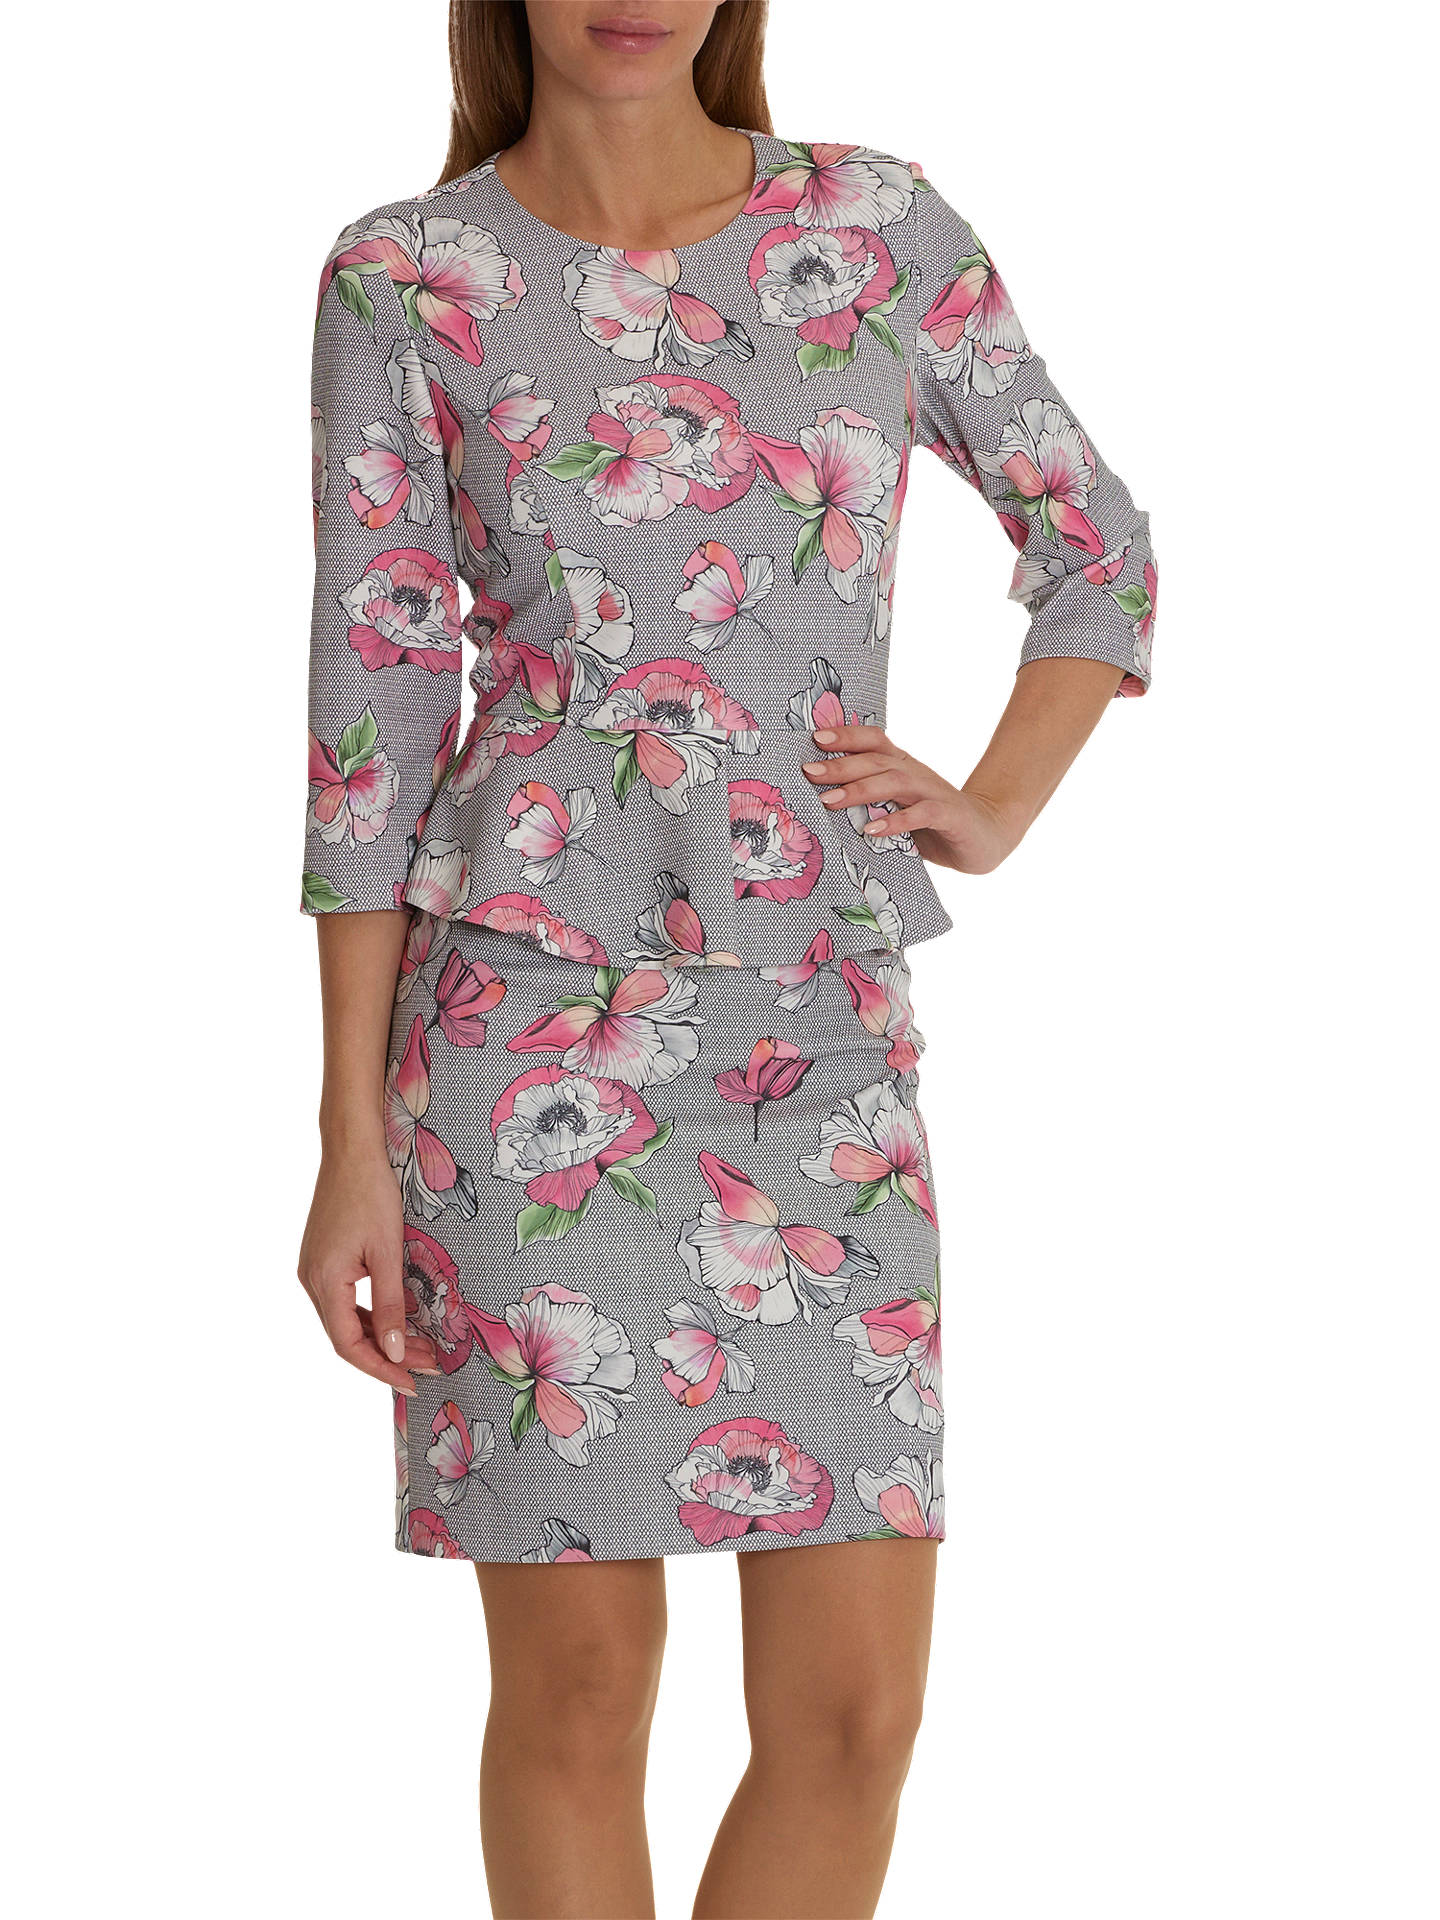 BuyBetty & Co. Floral Print Peplum Dress, Grey/Pink, 12 Online at johnlewis.com